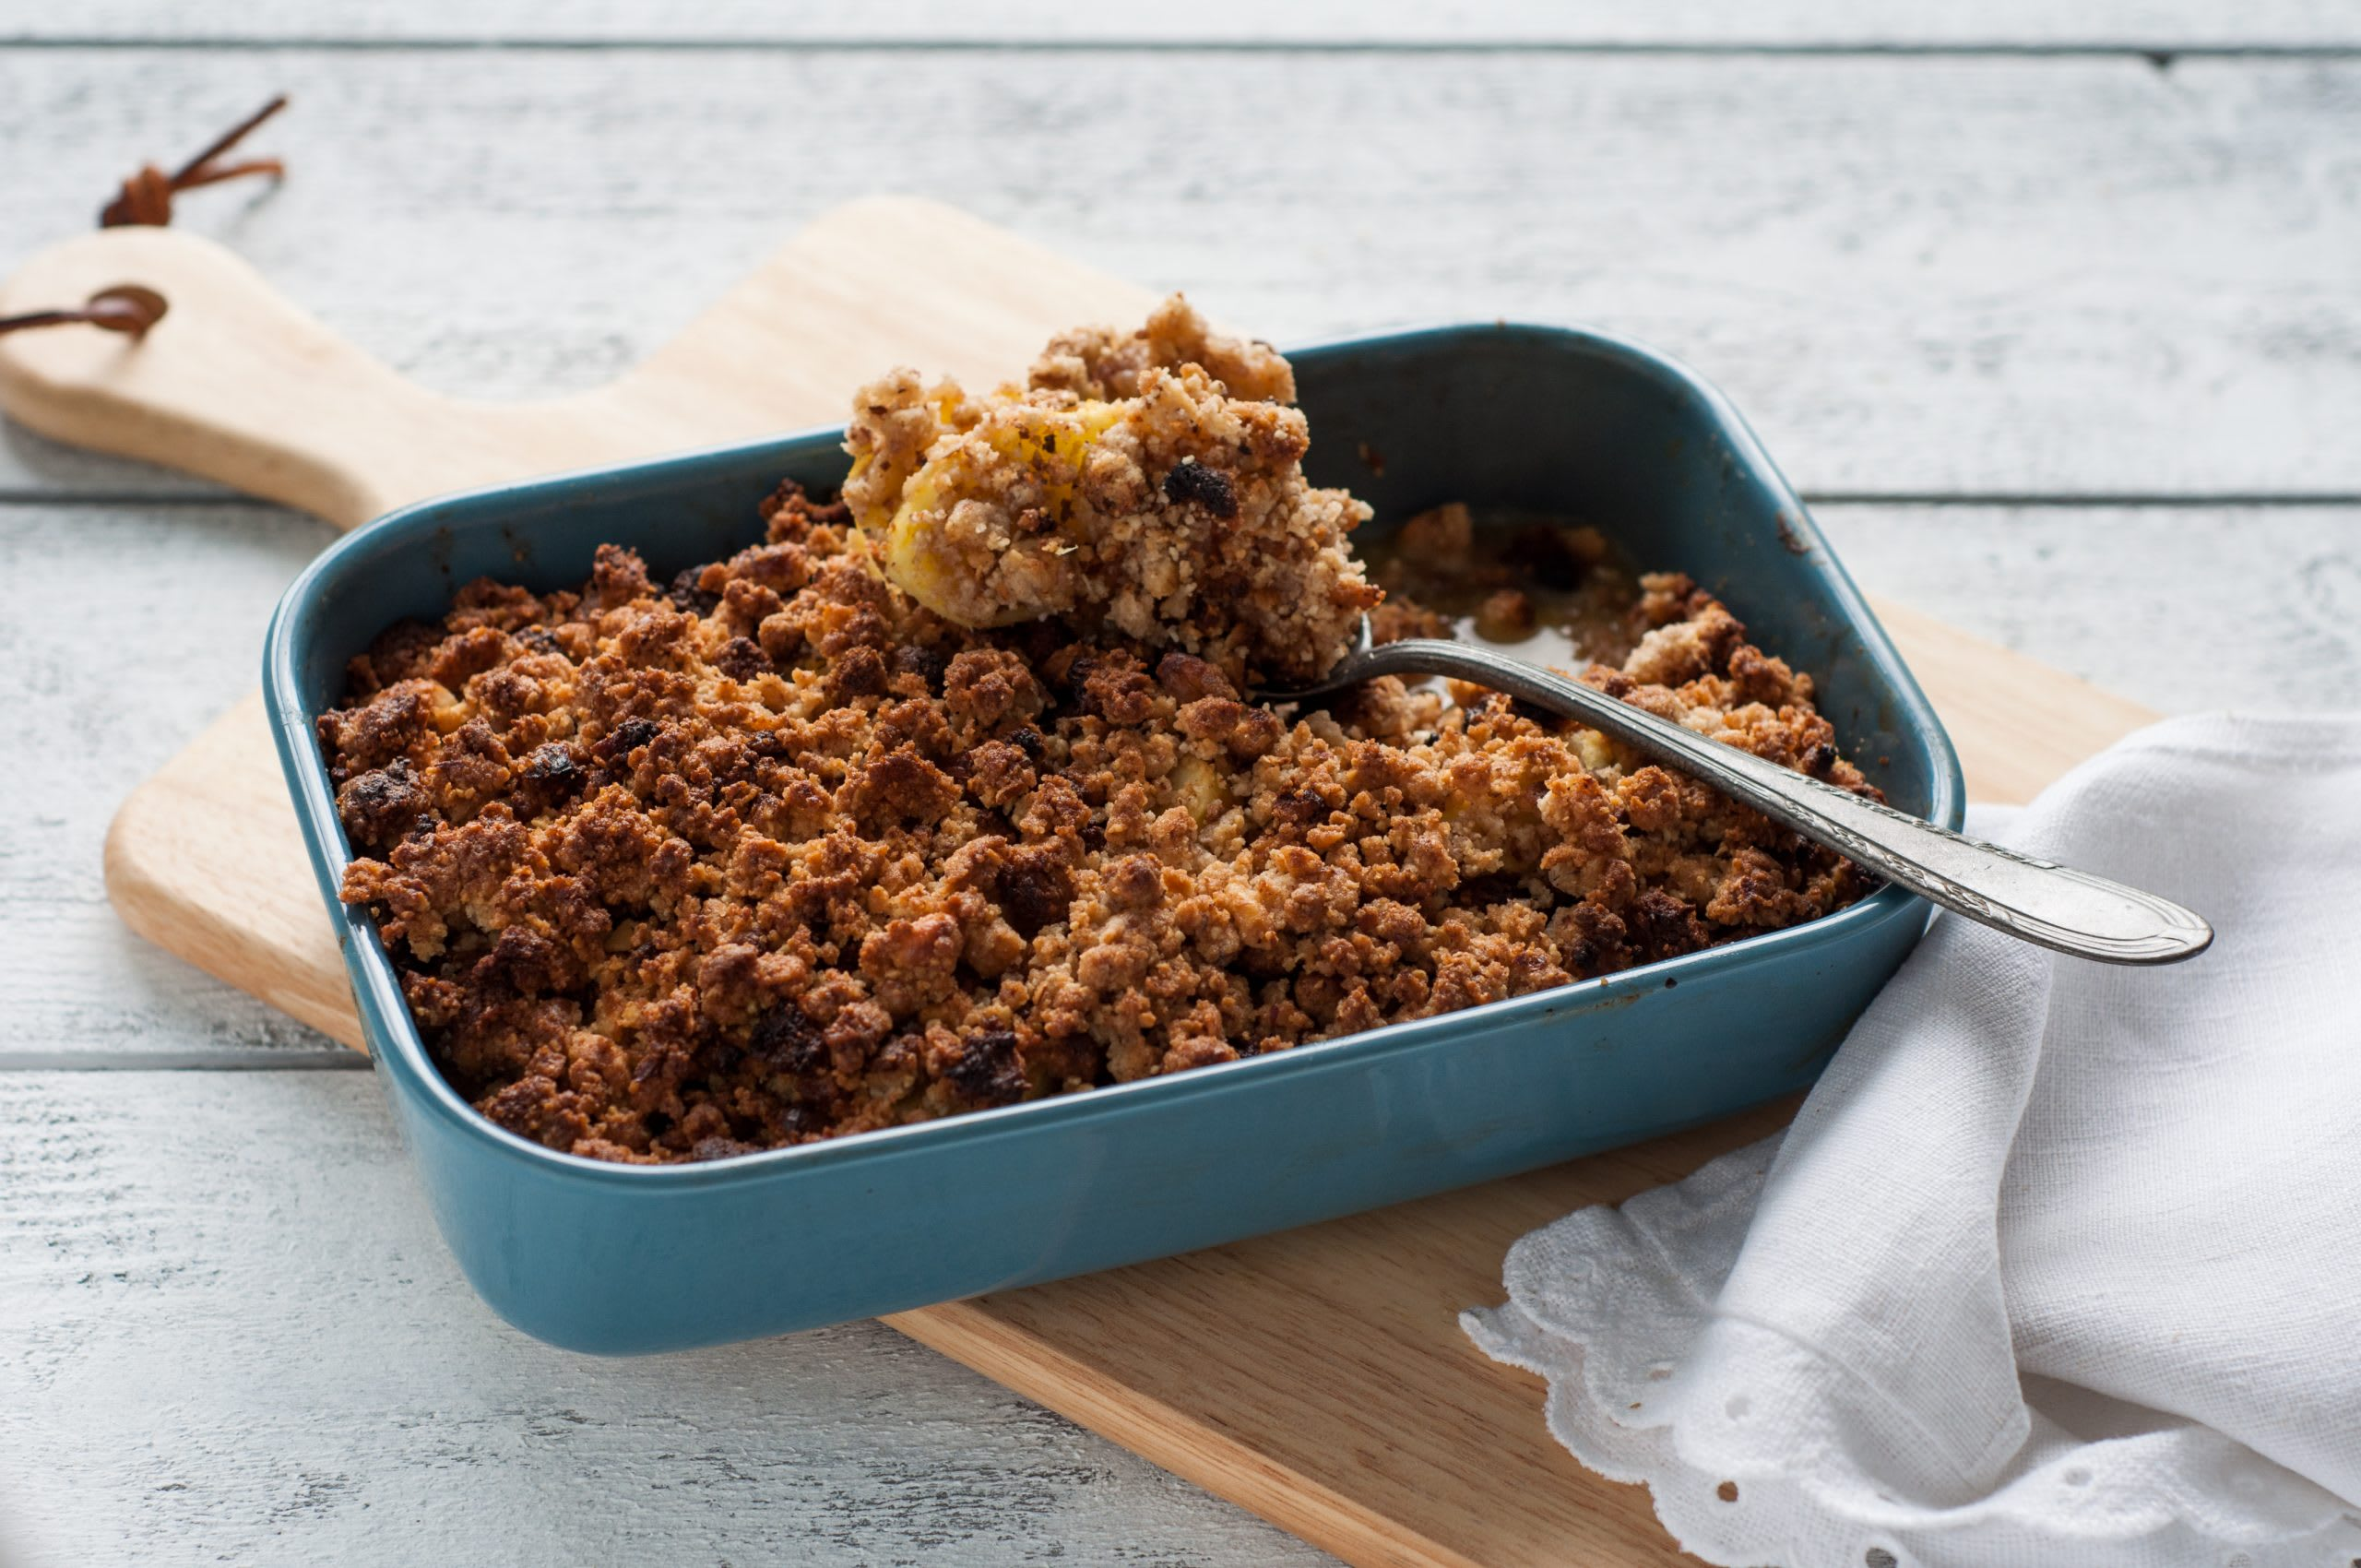 Apfel-Nuss-Crumble mit Orange